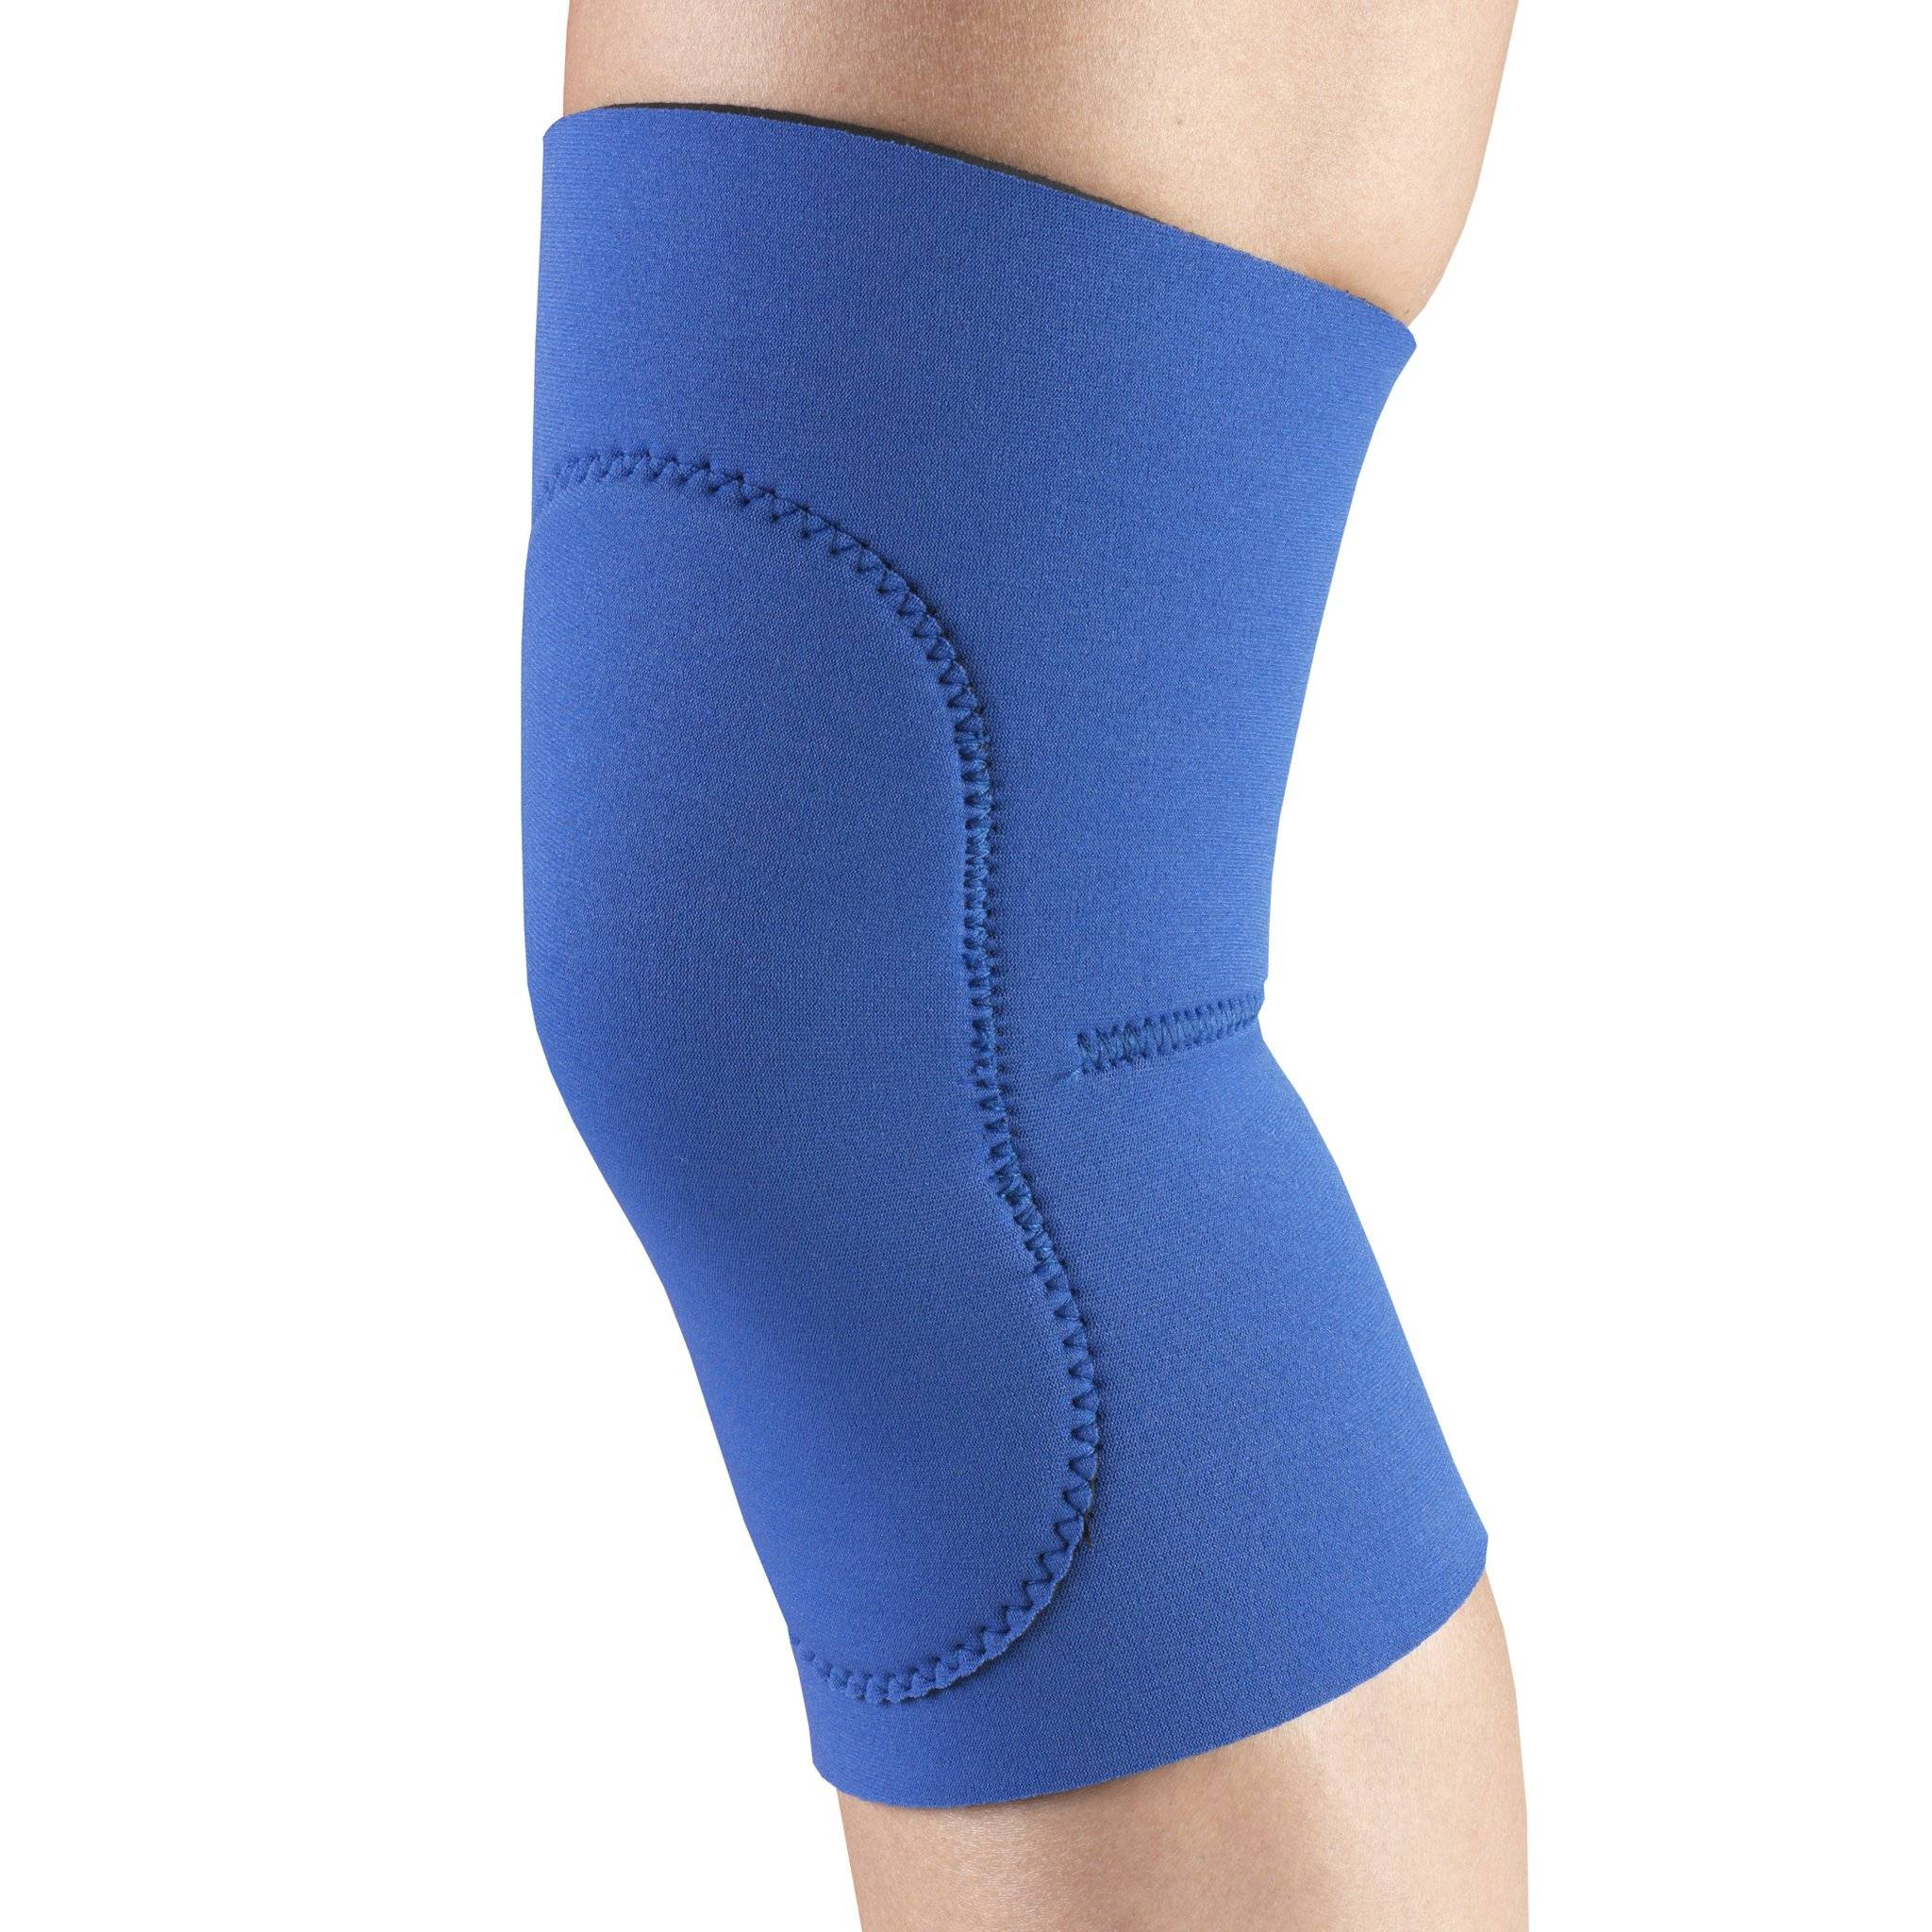 O141 / NEOPRENE KNEE SLEEVE - OVAL PAD